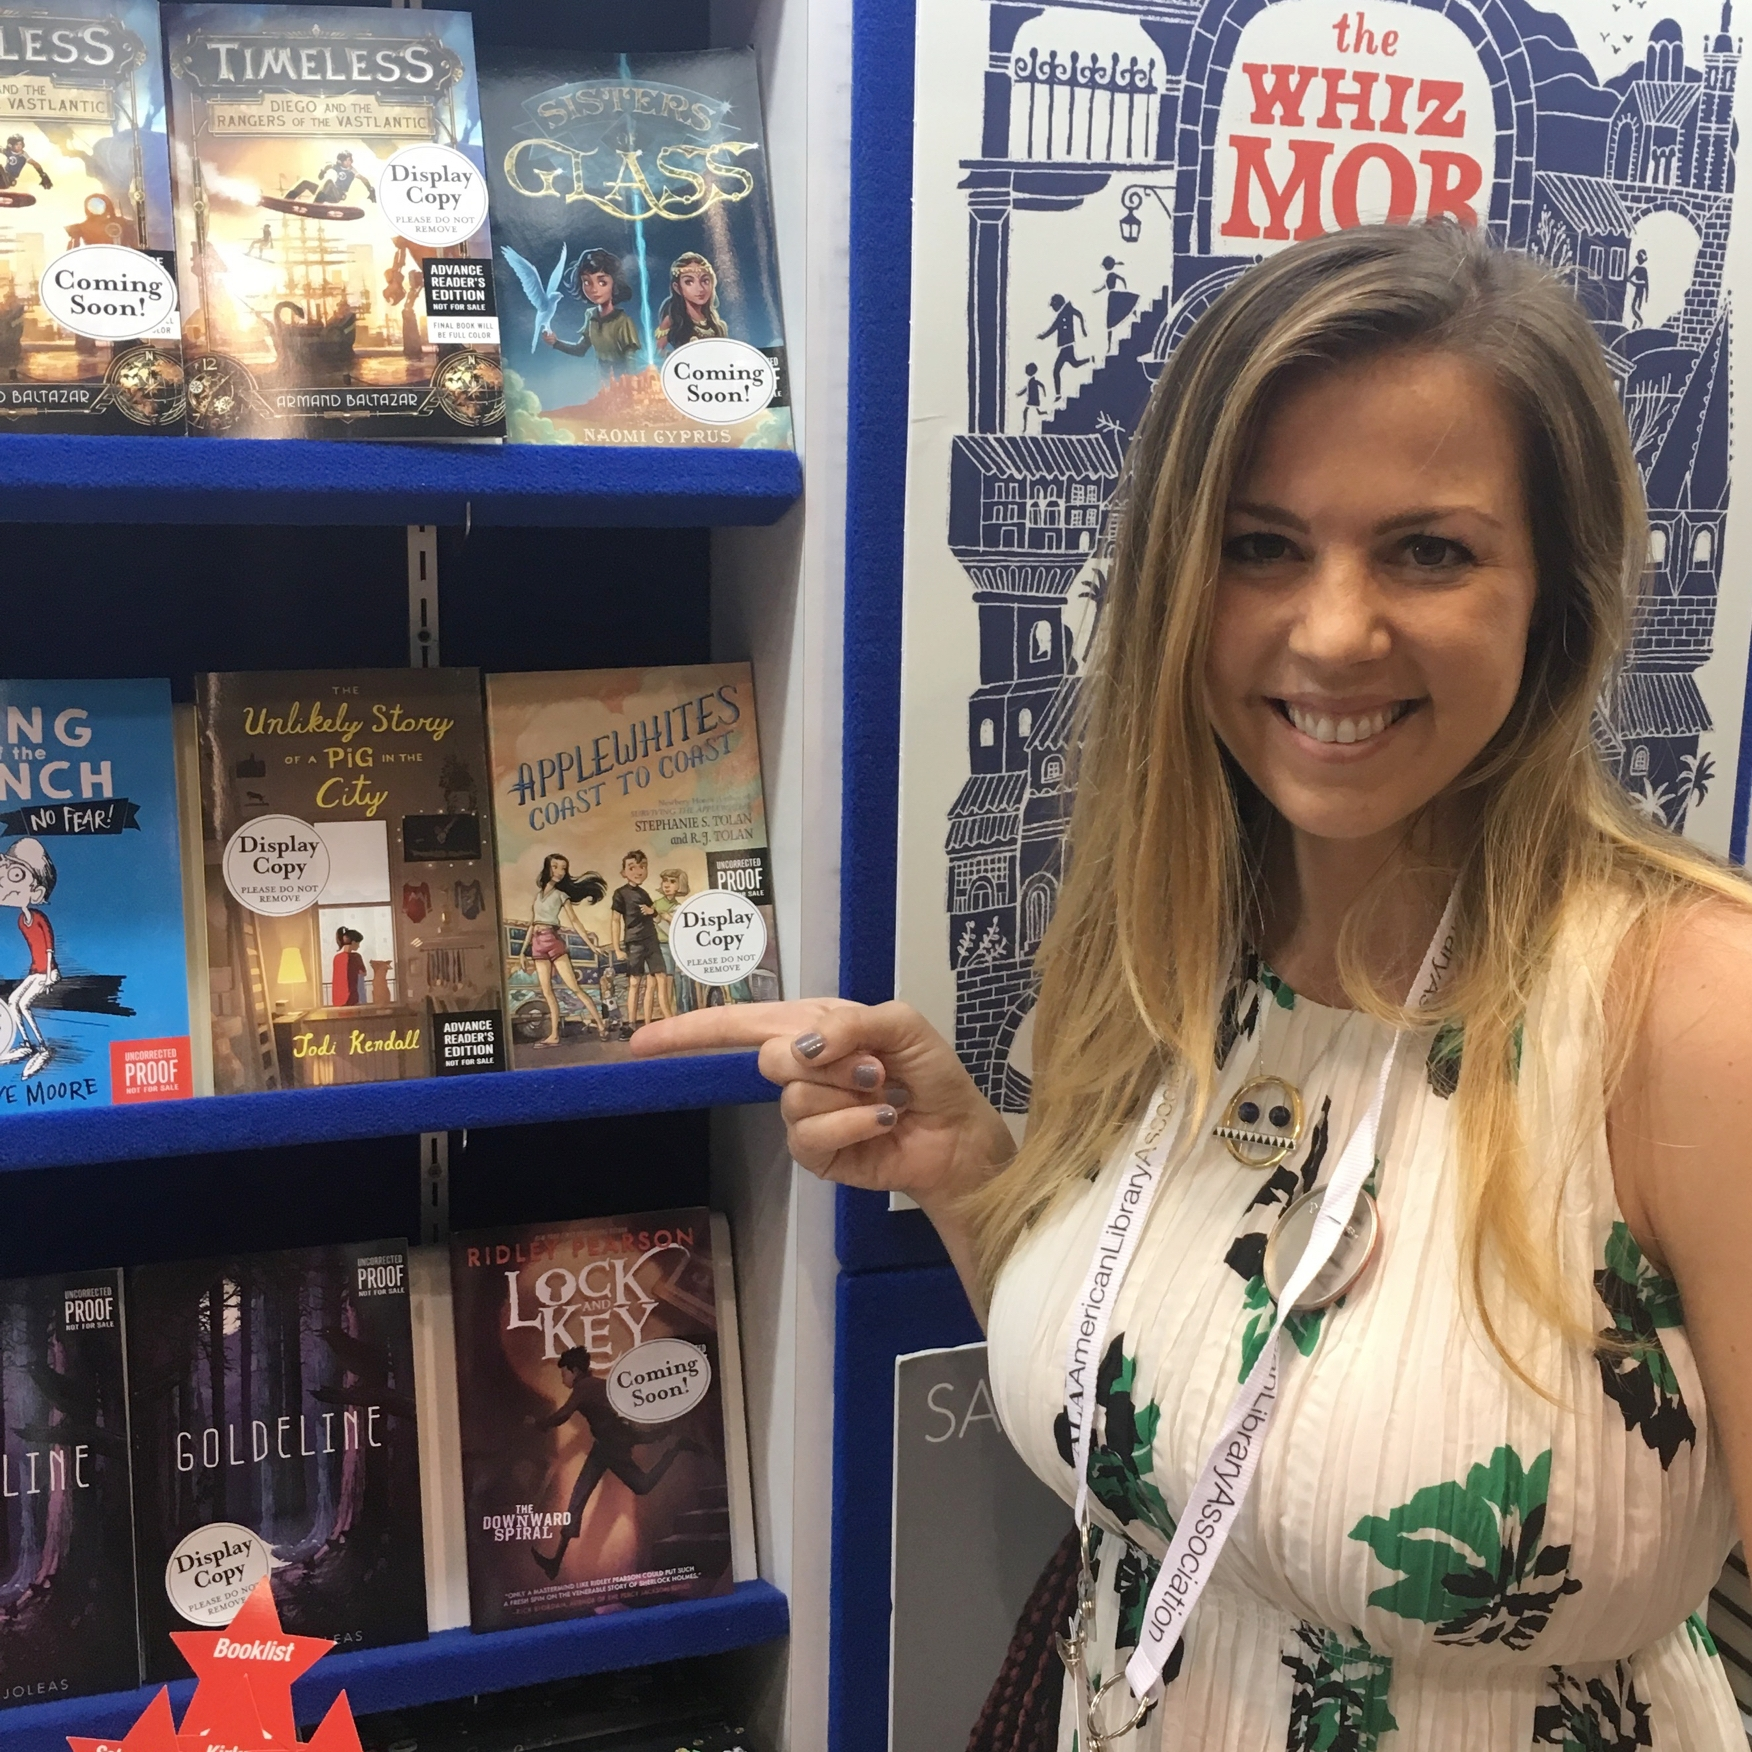 The Unlikely Story of a Pig in the City  advance reader's copy (ARC) on display at the HarperCollins Children's Books booth at ALA Annual Convention 2017. Final hardback version publishes on October 3, 2017